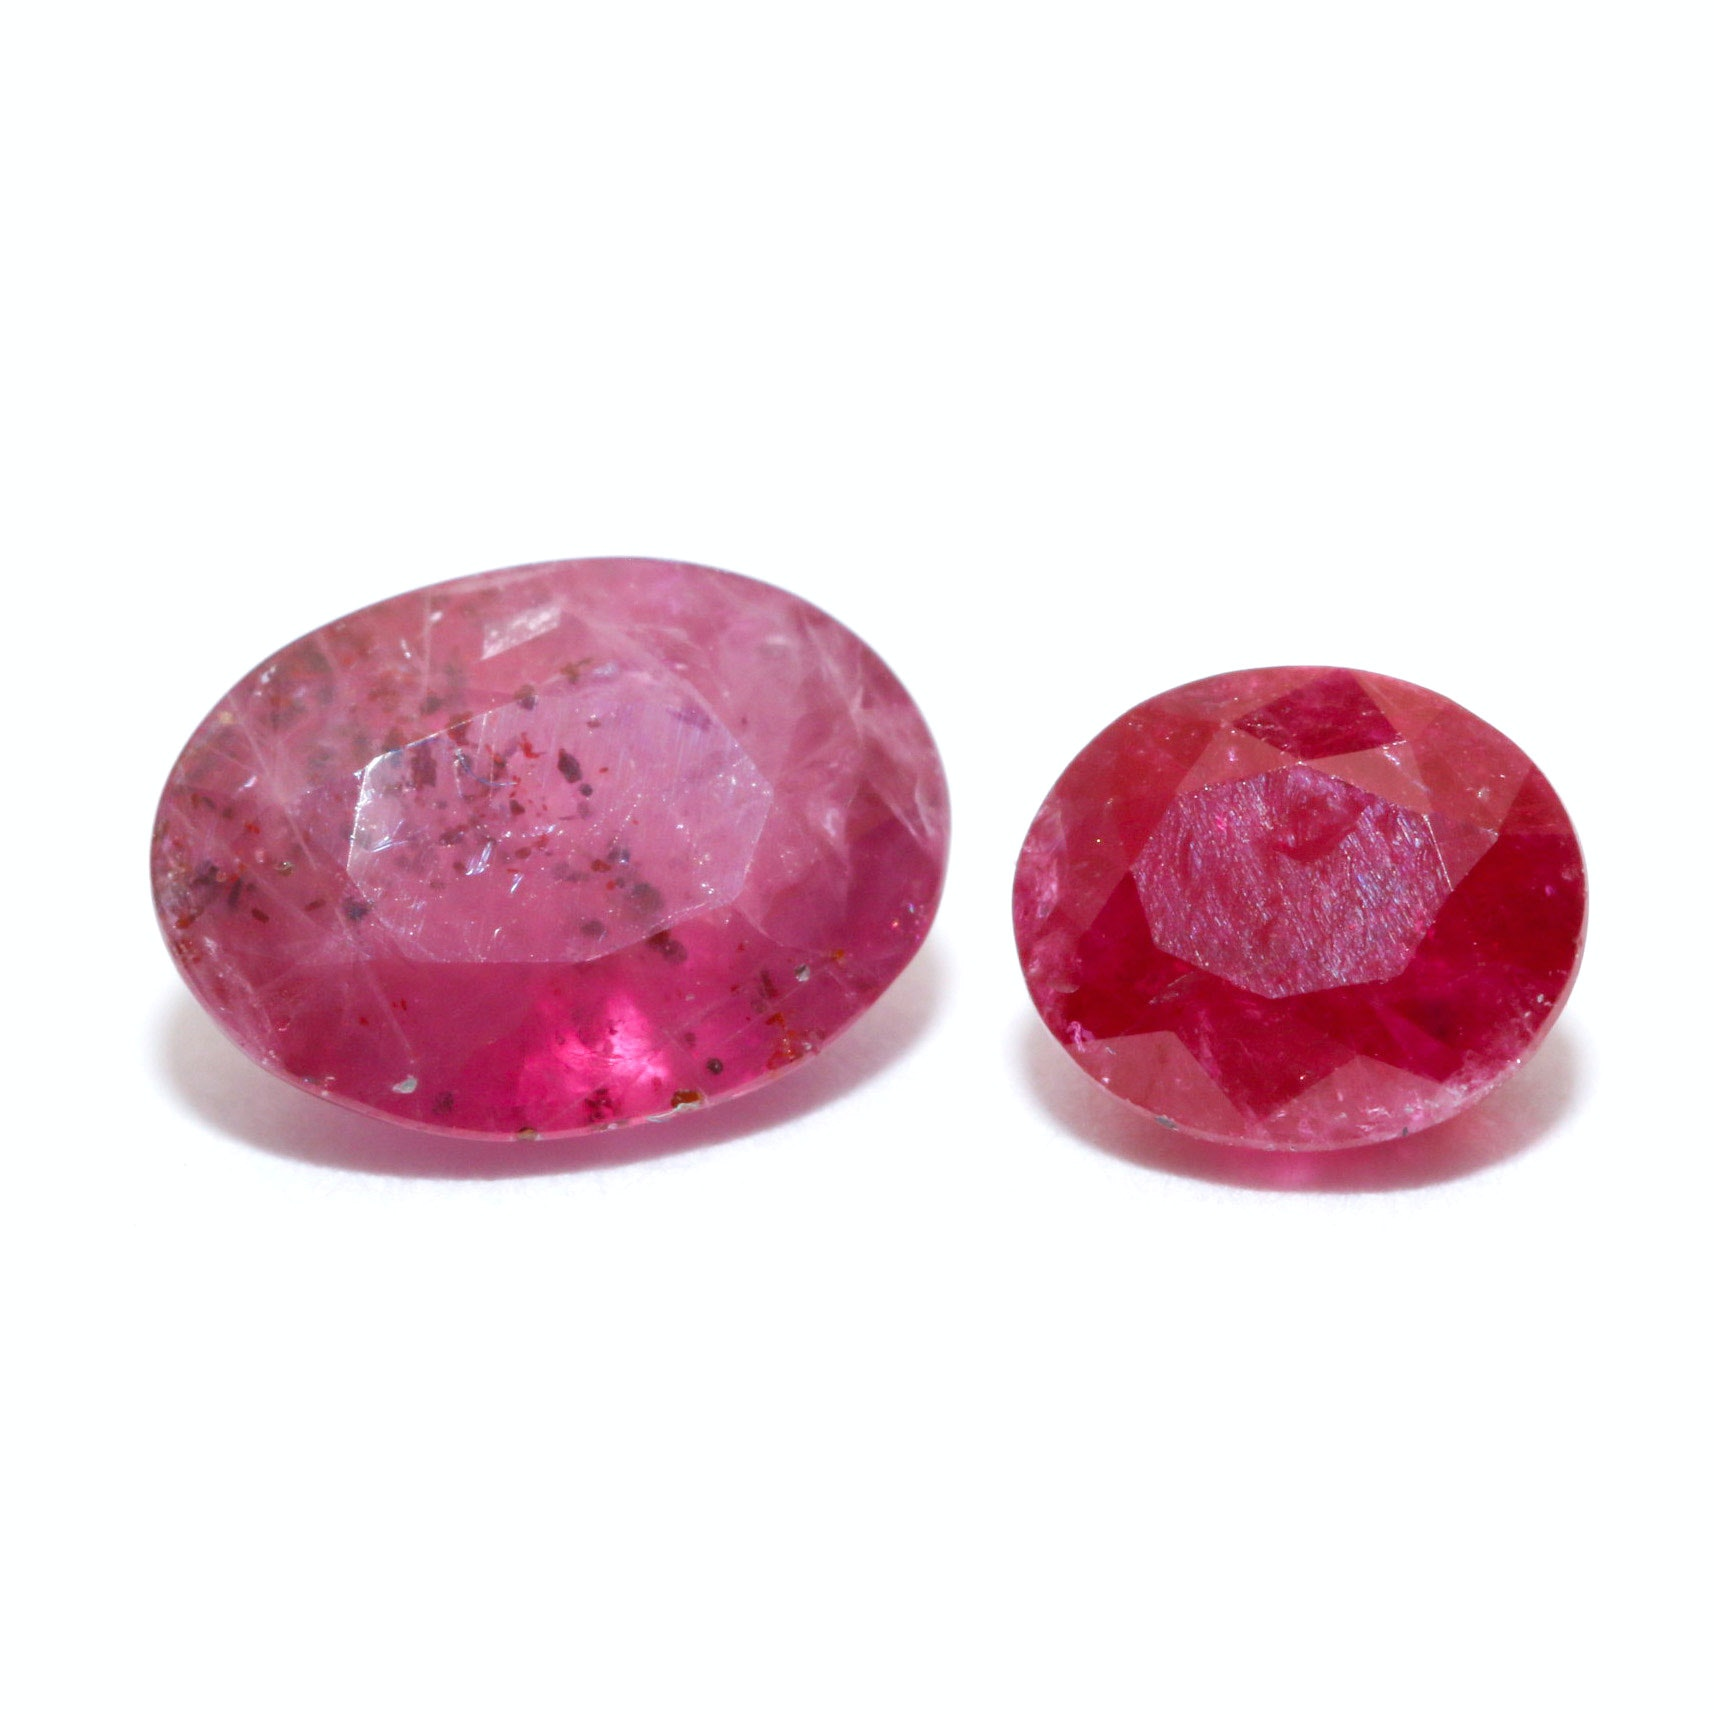 Pair of Loose 2.27 CTS Rubies